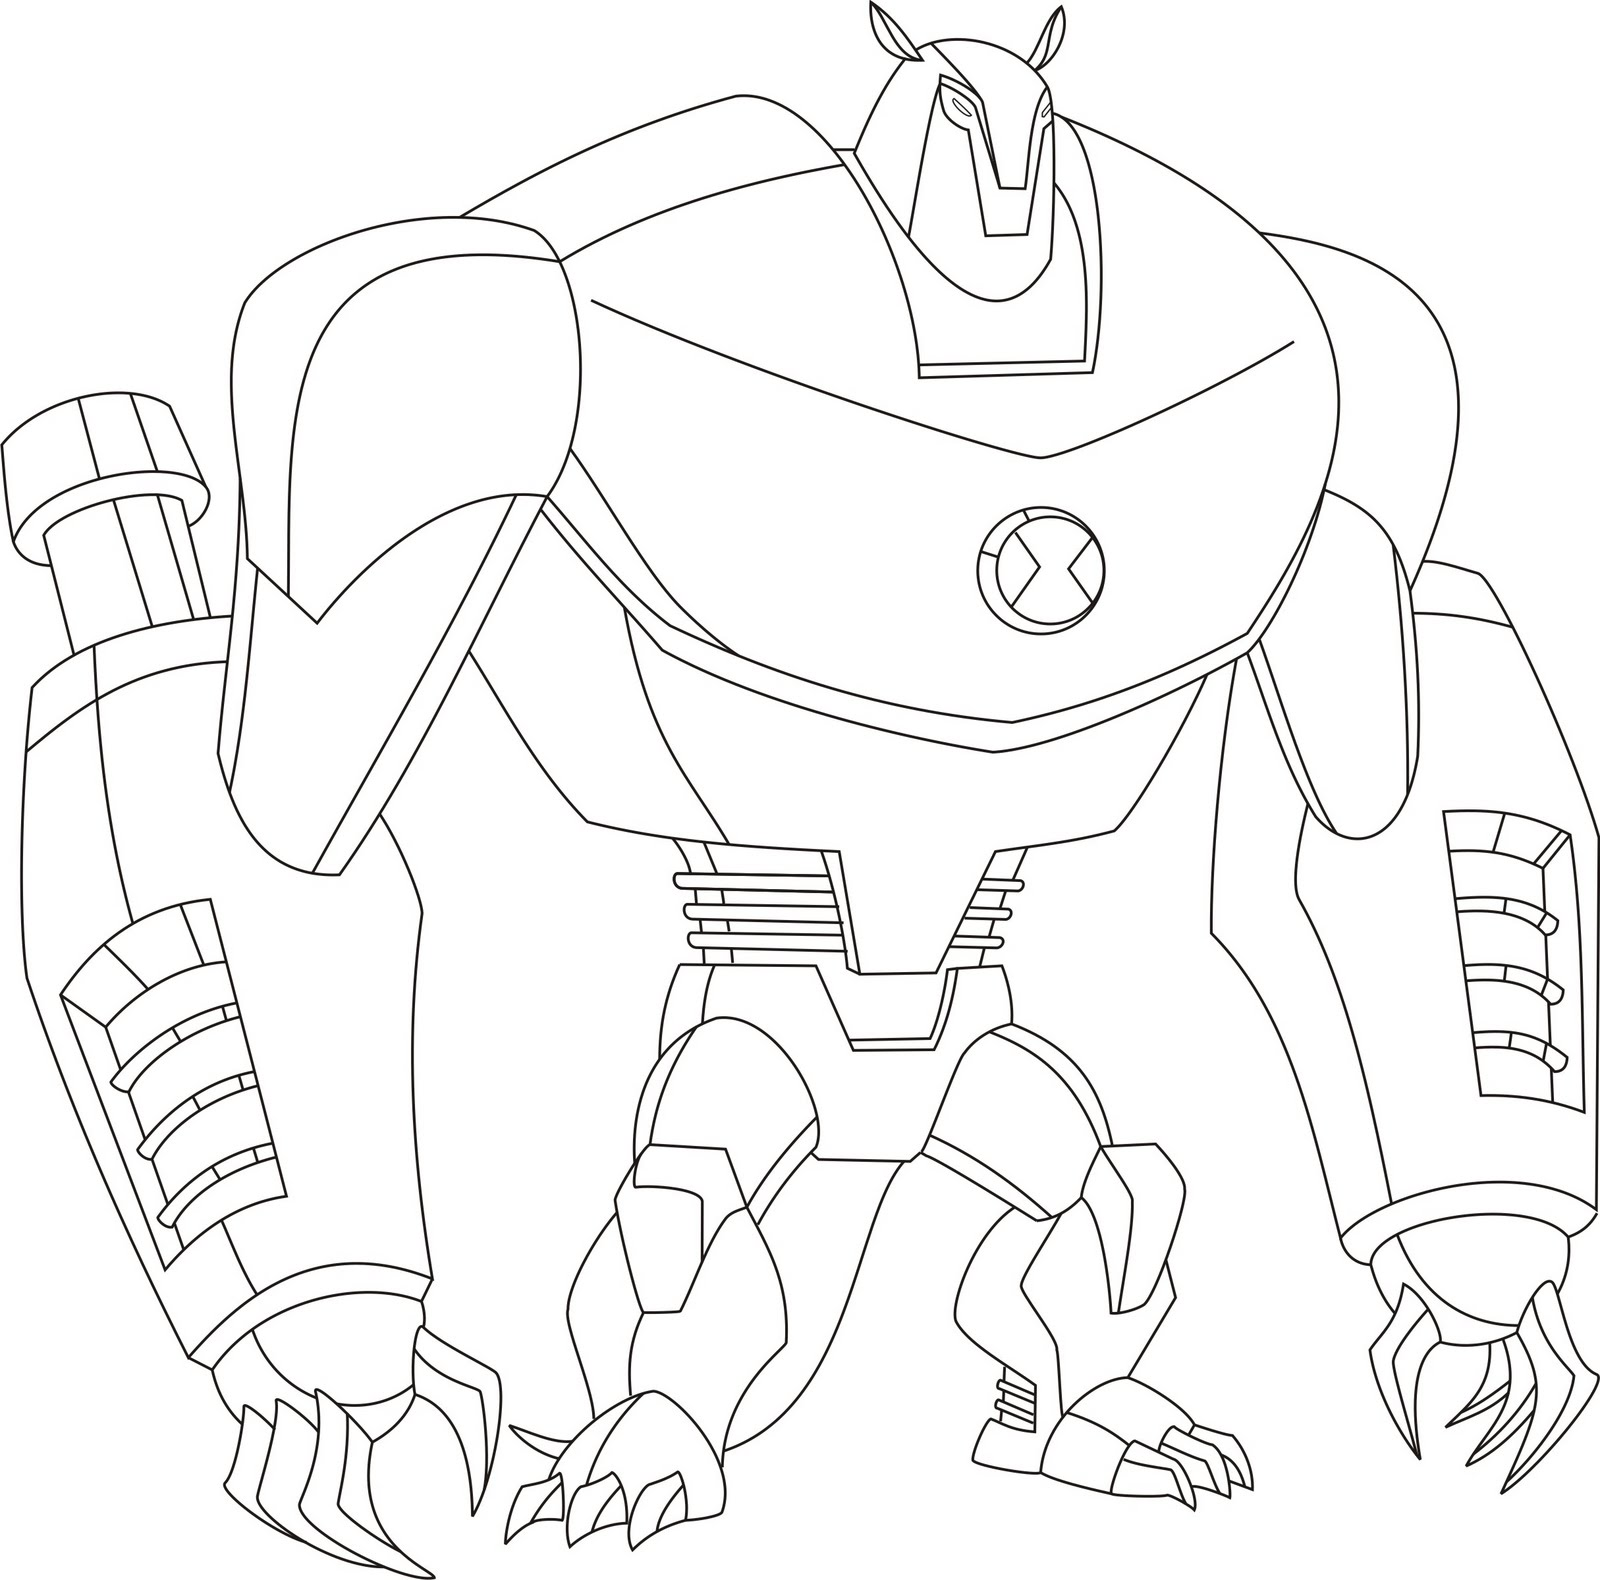 Free printable ben 10 coloring pages for kids for Ben 10 coloring pages games